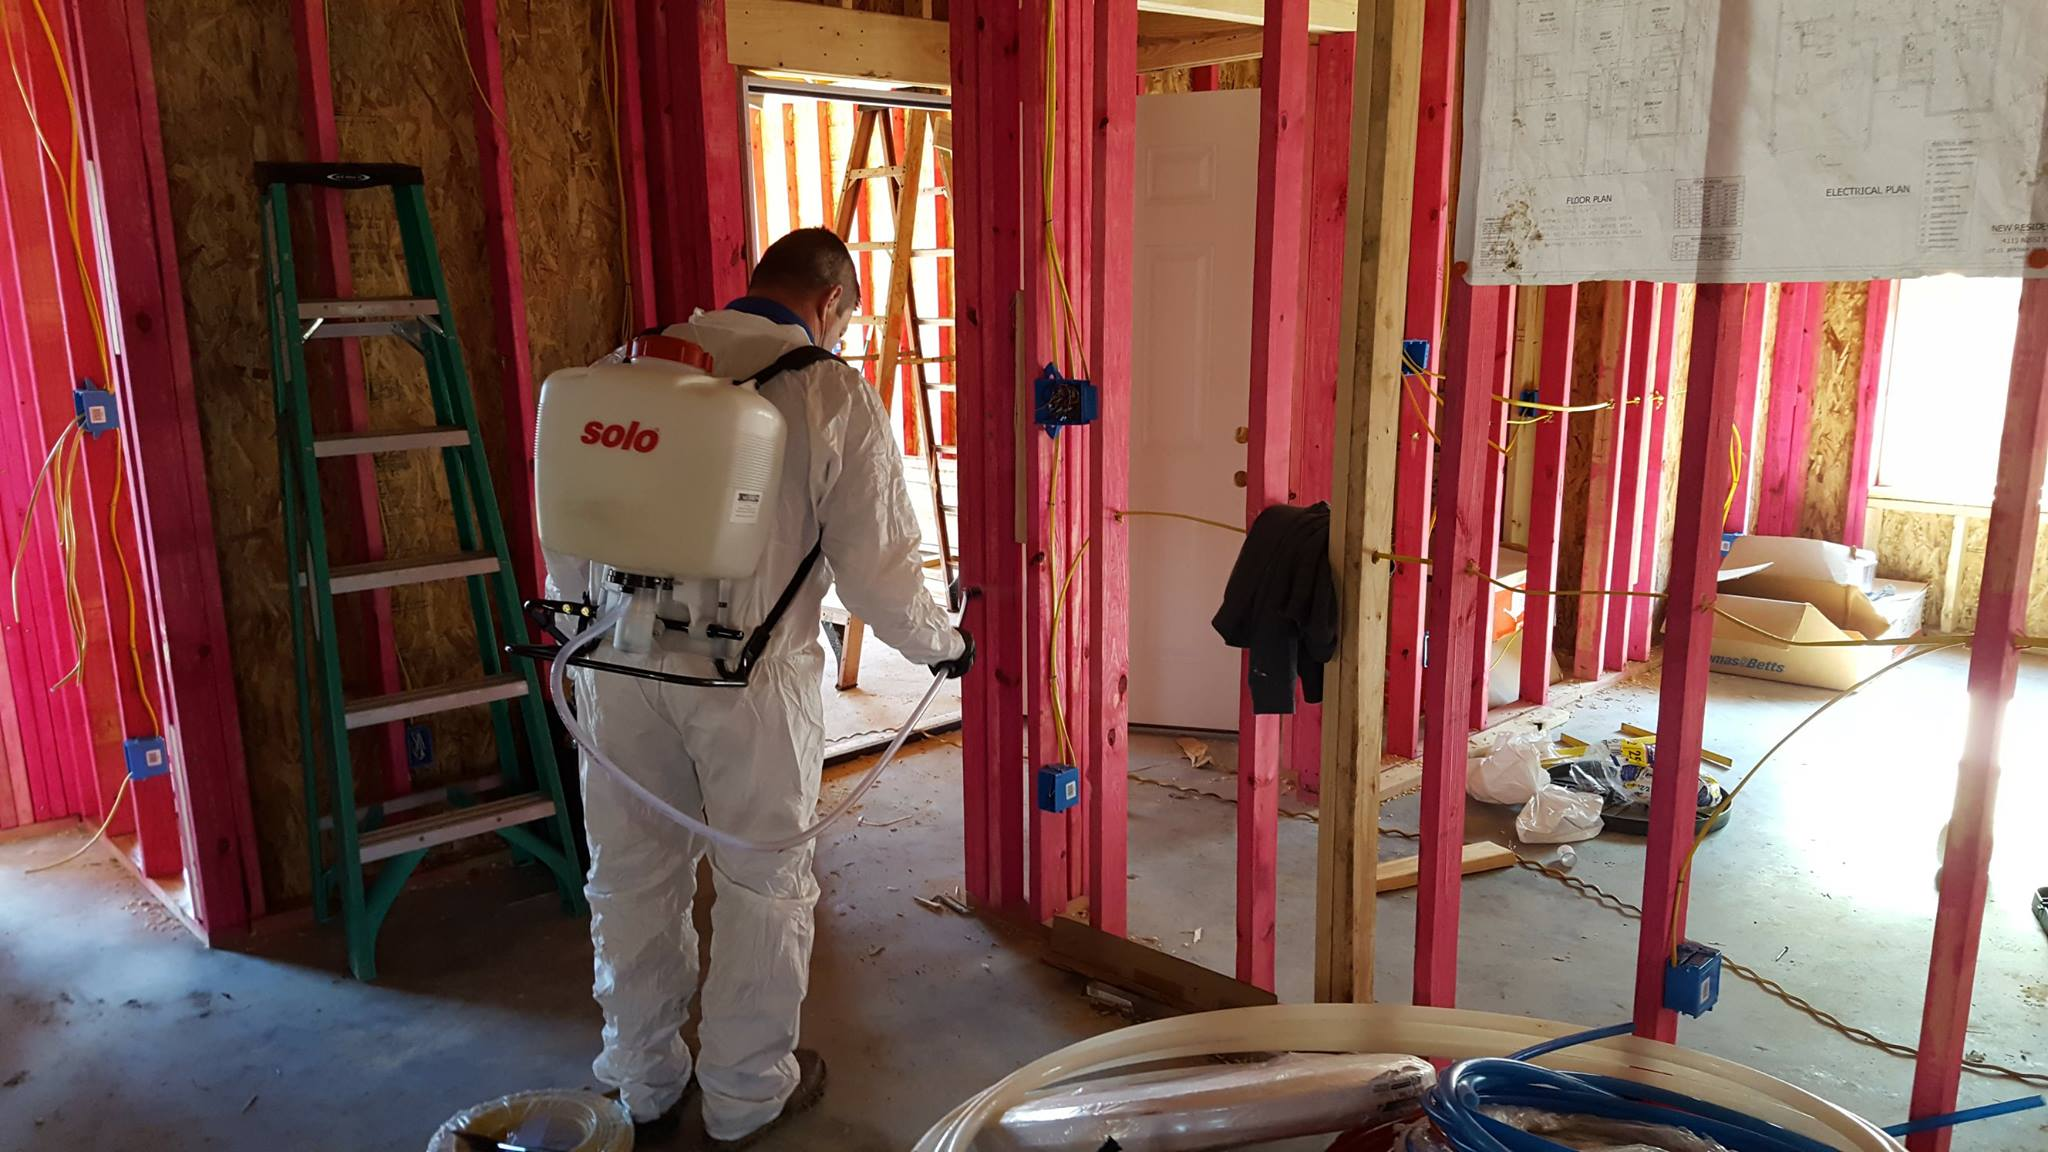 construction pest control pre-treatment Beaumont, construction pre-treatment Port Arthur, commercial pest control Orange TX, pest control Vidor, pest control Sour Lake